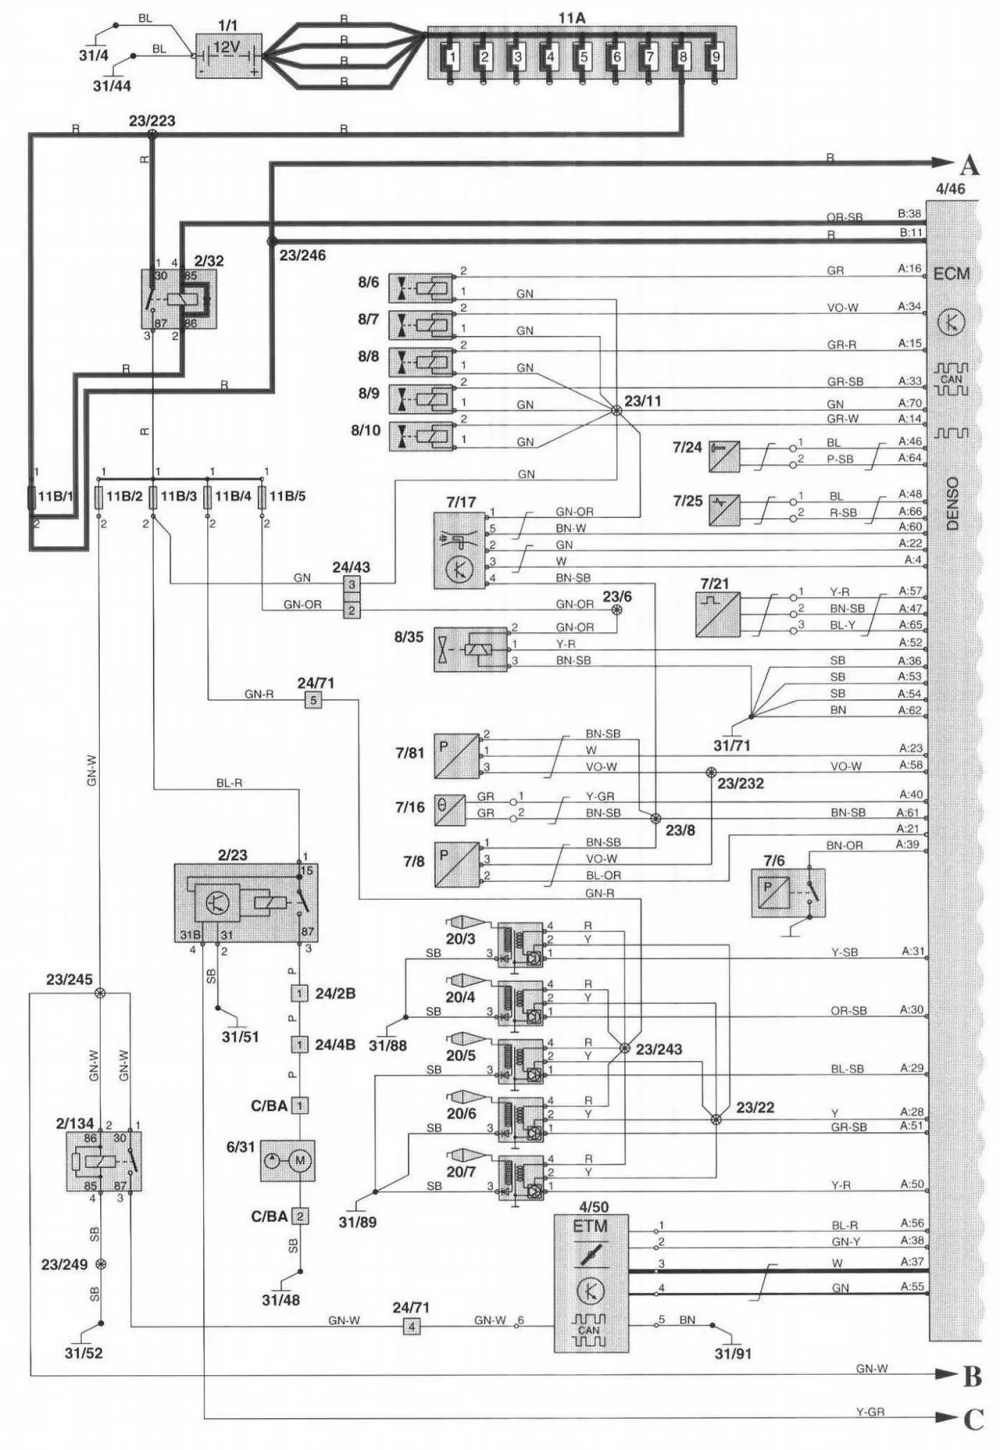 medium resolution of wiring diagram volvo v70 wiring diagram blog volvo v70 wiring diagram 1999 2003 volvo fuse diagram